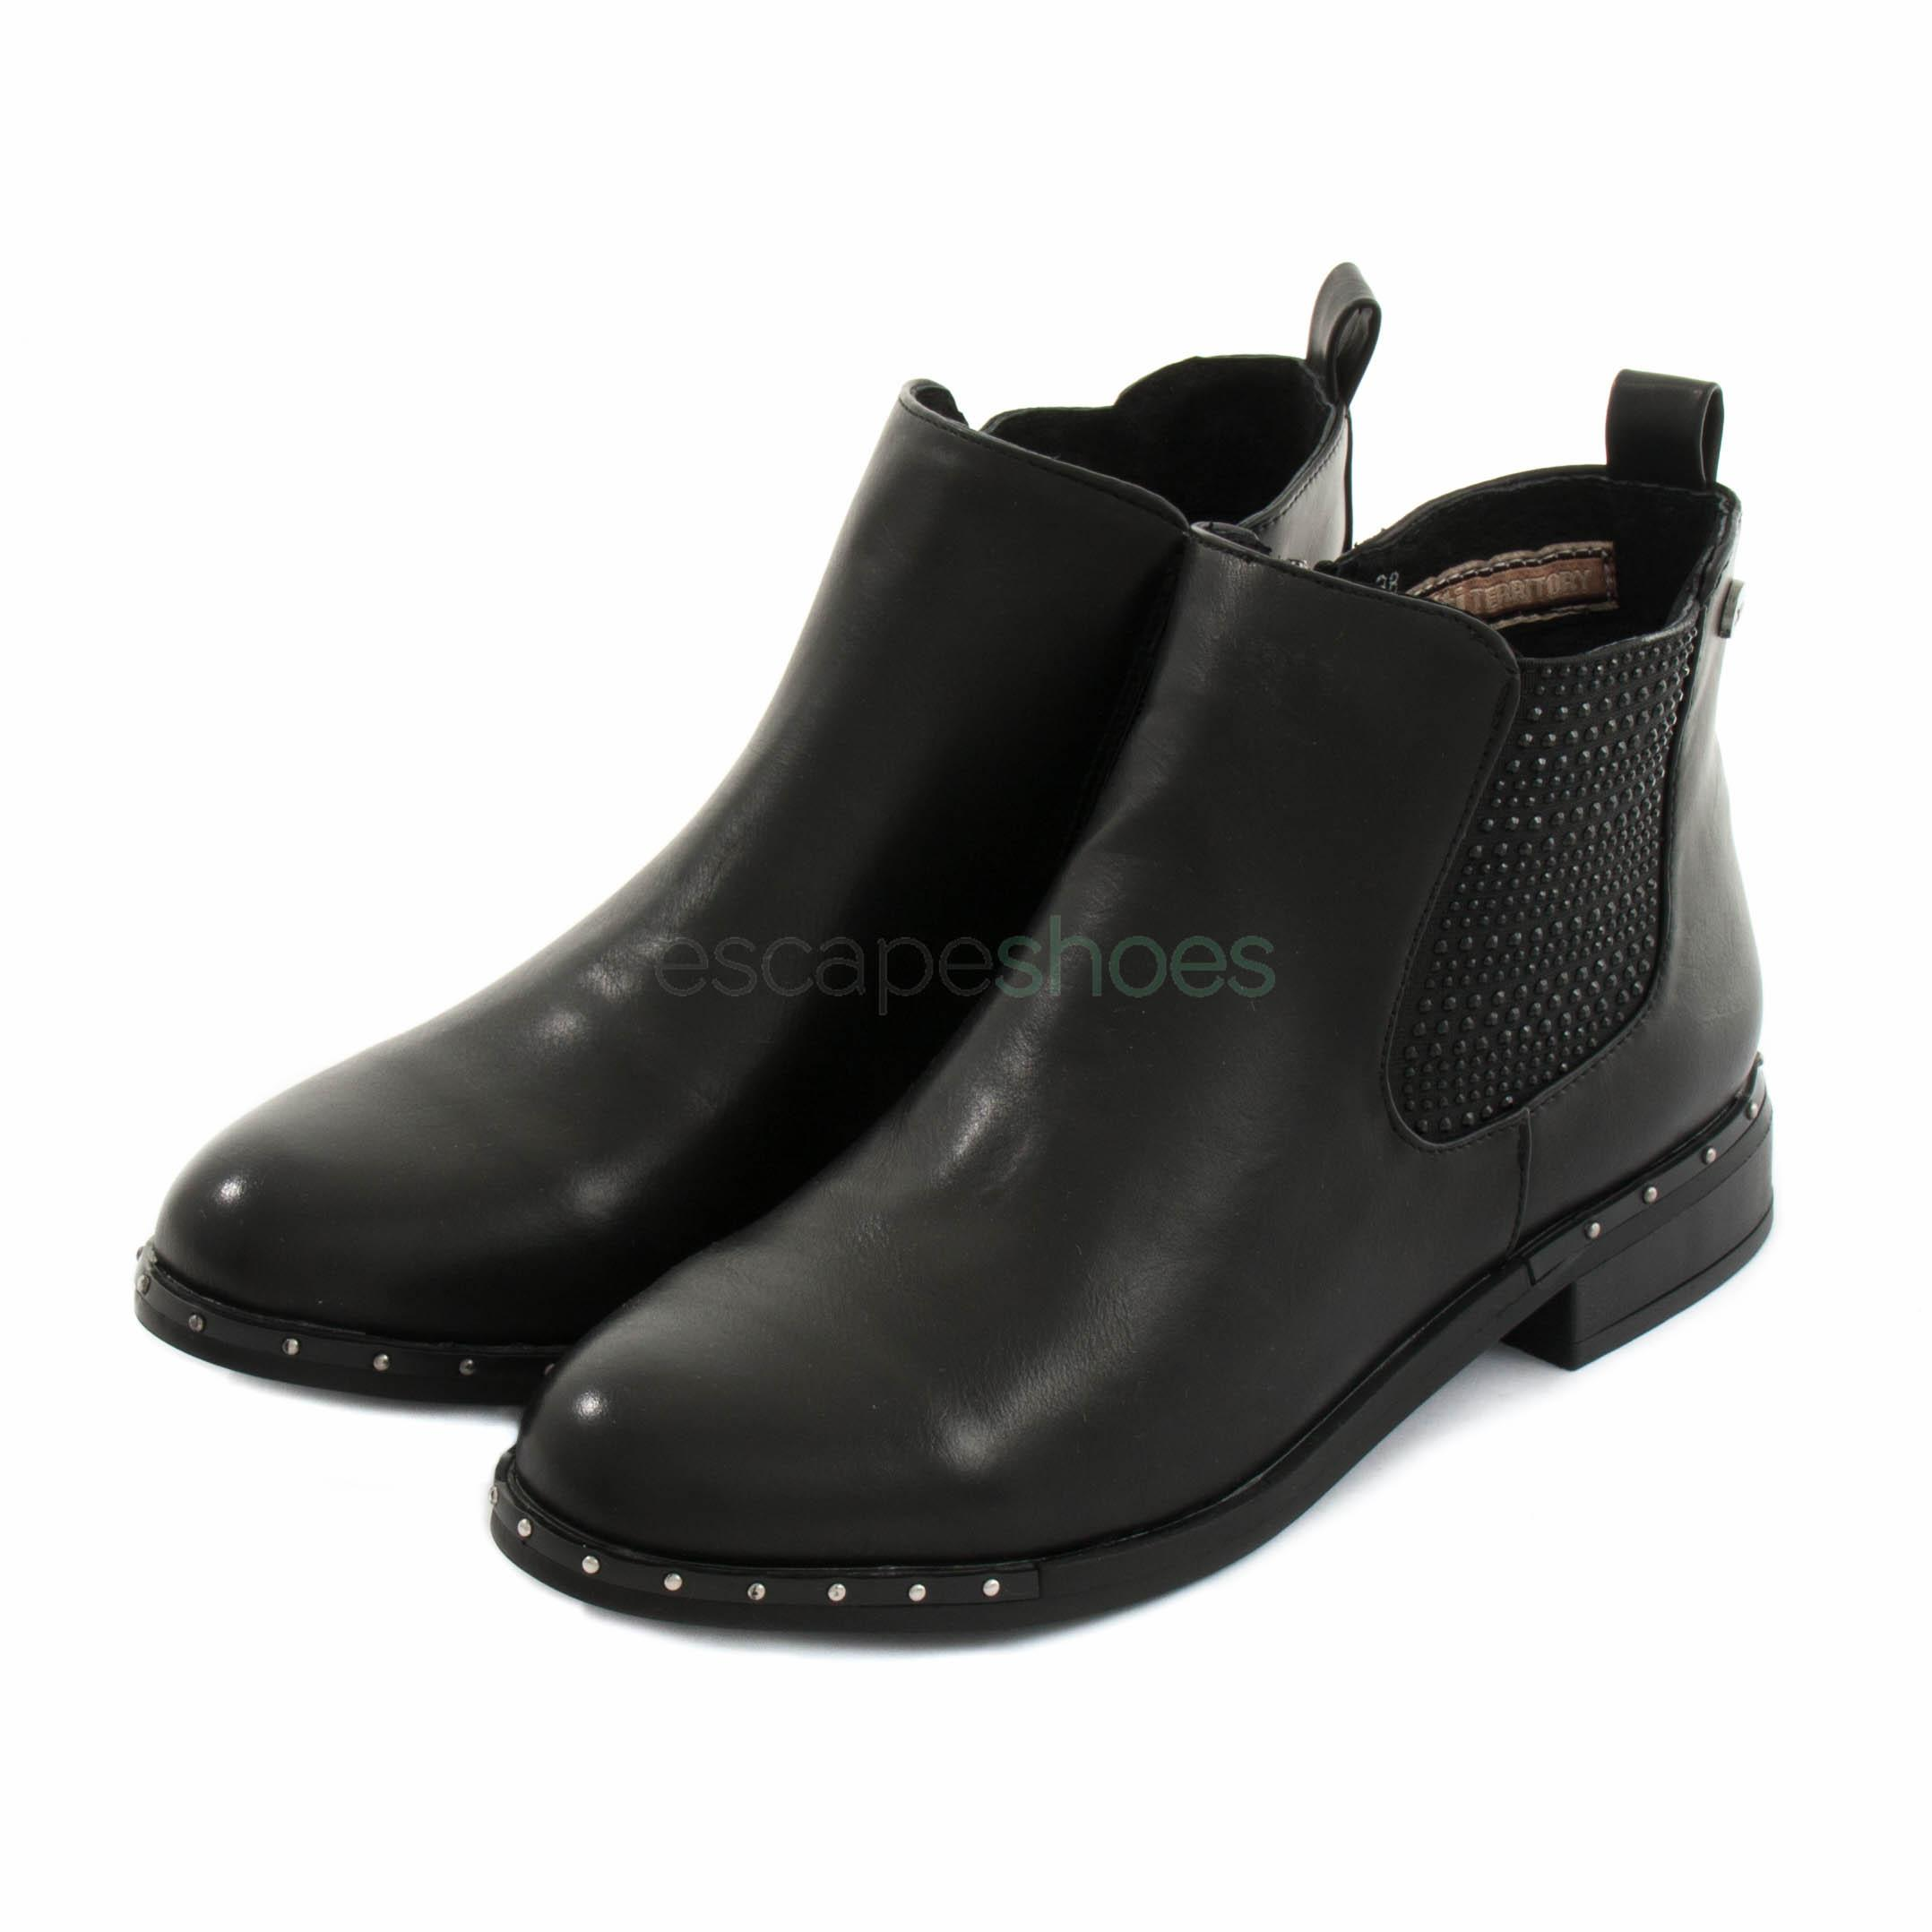 feec434b298a Buy your Ankle Boots XTI Chelsea Black here